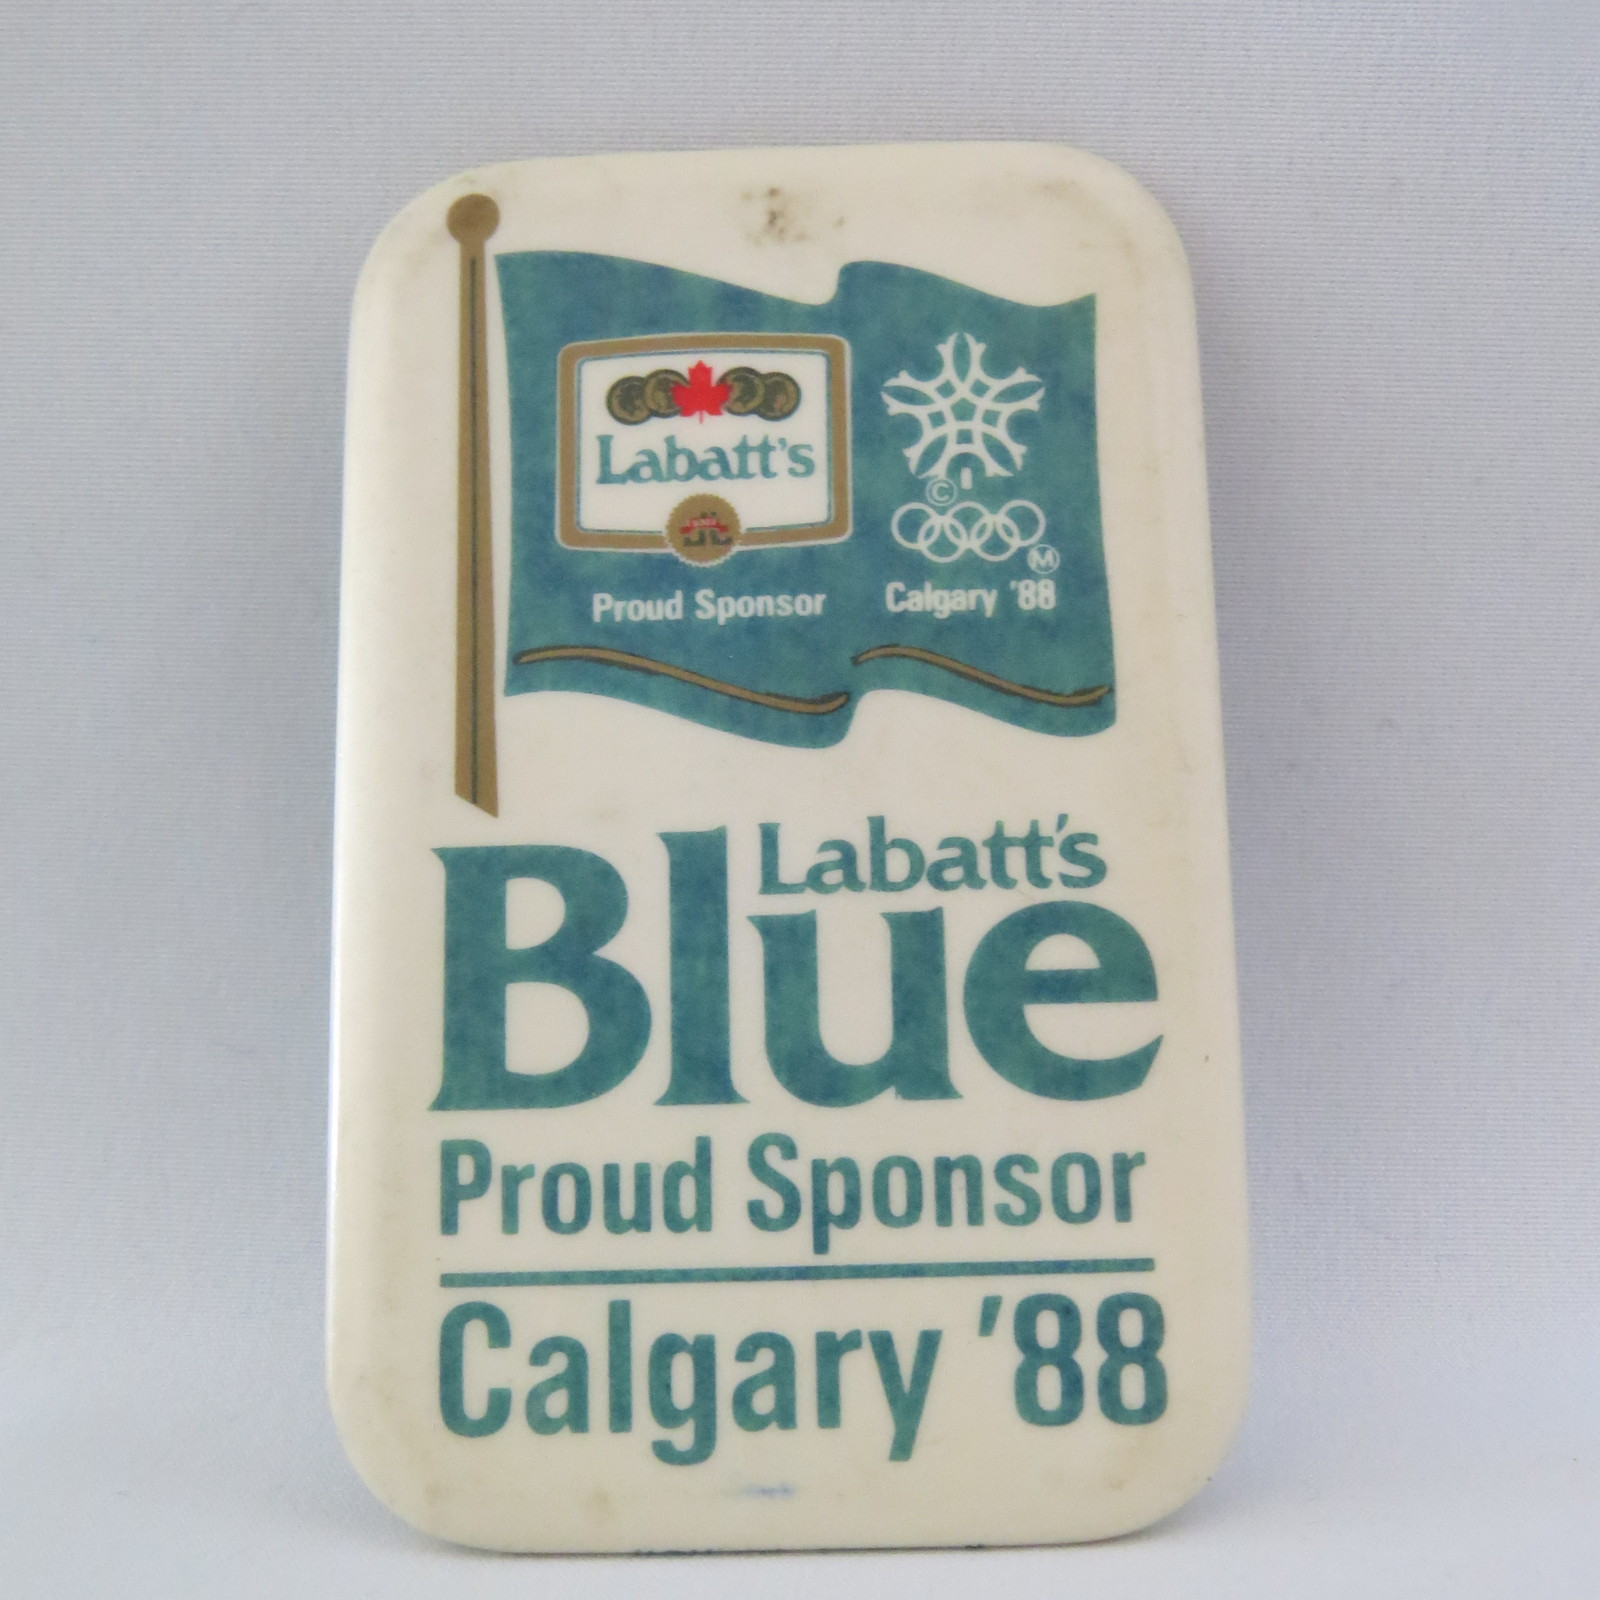 Primary image for 1988 Winter Olympic Games - Labatt's Blue Sponsor Pin - Calgary Canada 1988